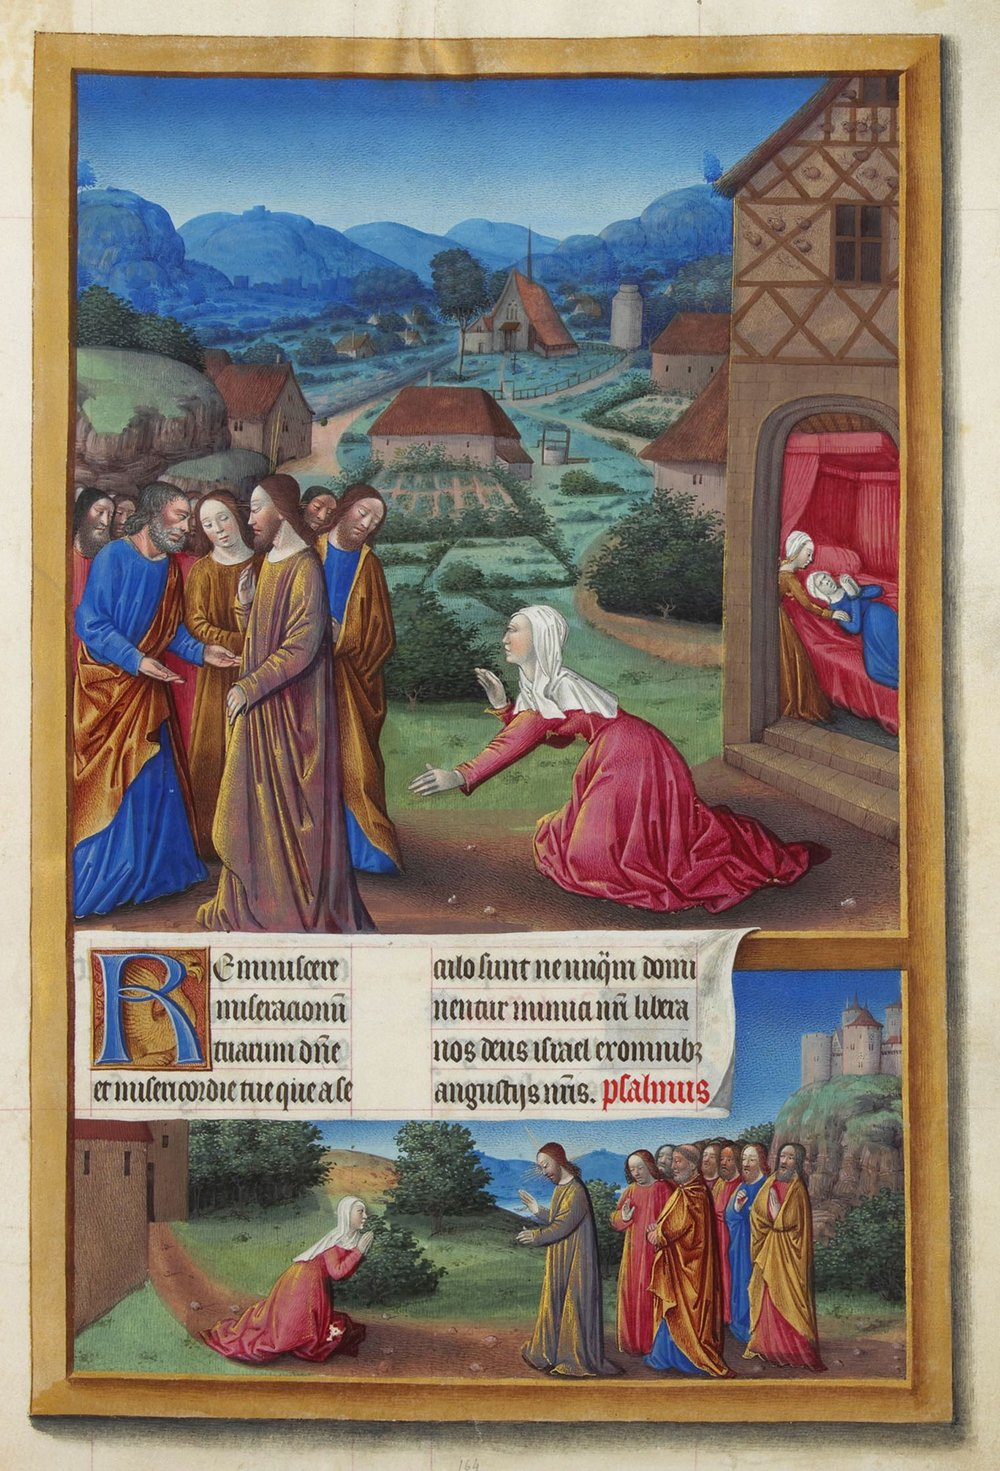 The Canaanite Woman , Les Très Riches Heures du duc de Berry, 16th century. Public Domain.